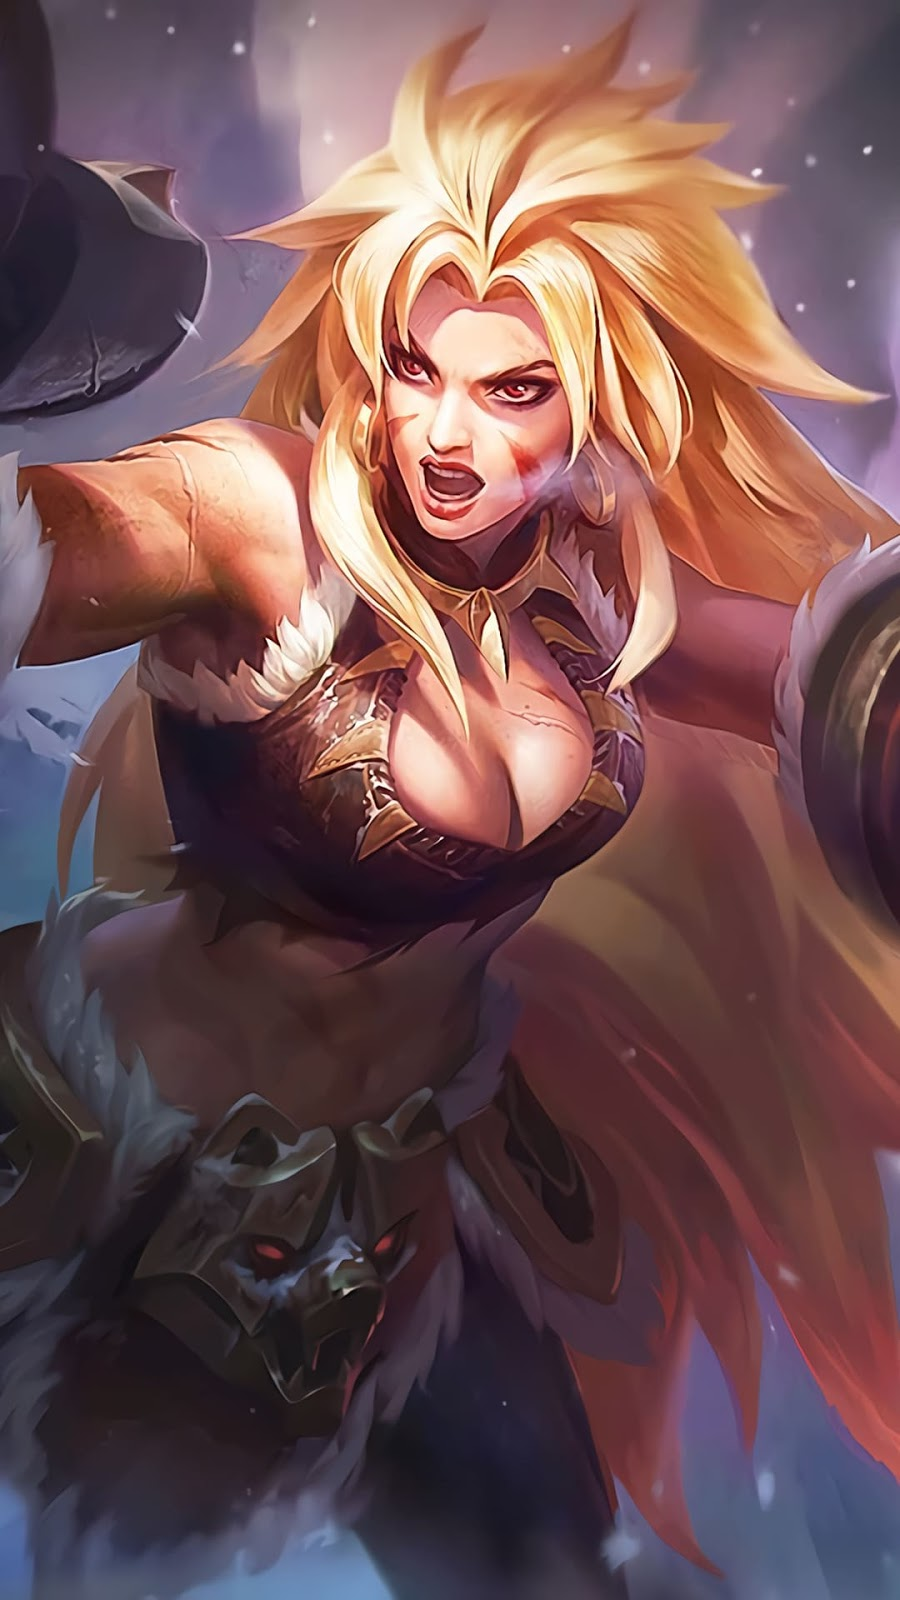 10 Wallpaper Masha Mobile Legends Ml Full Hd For Pc Android Ios